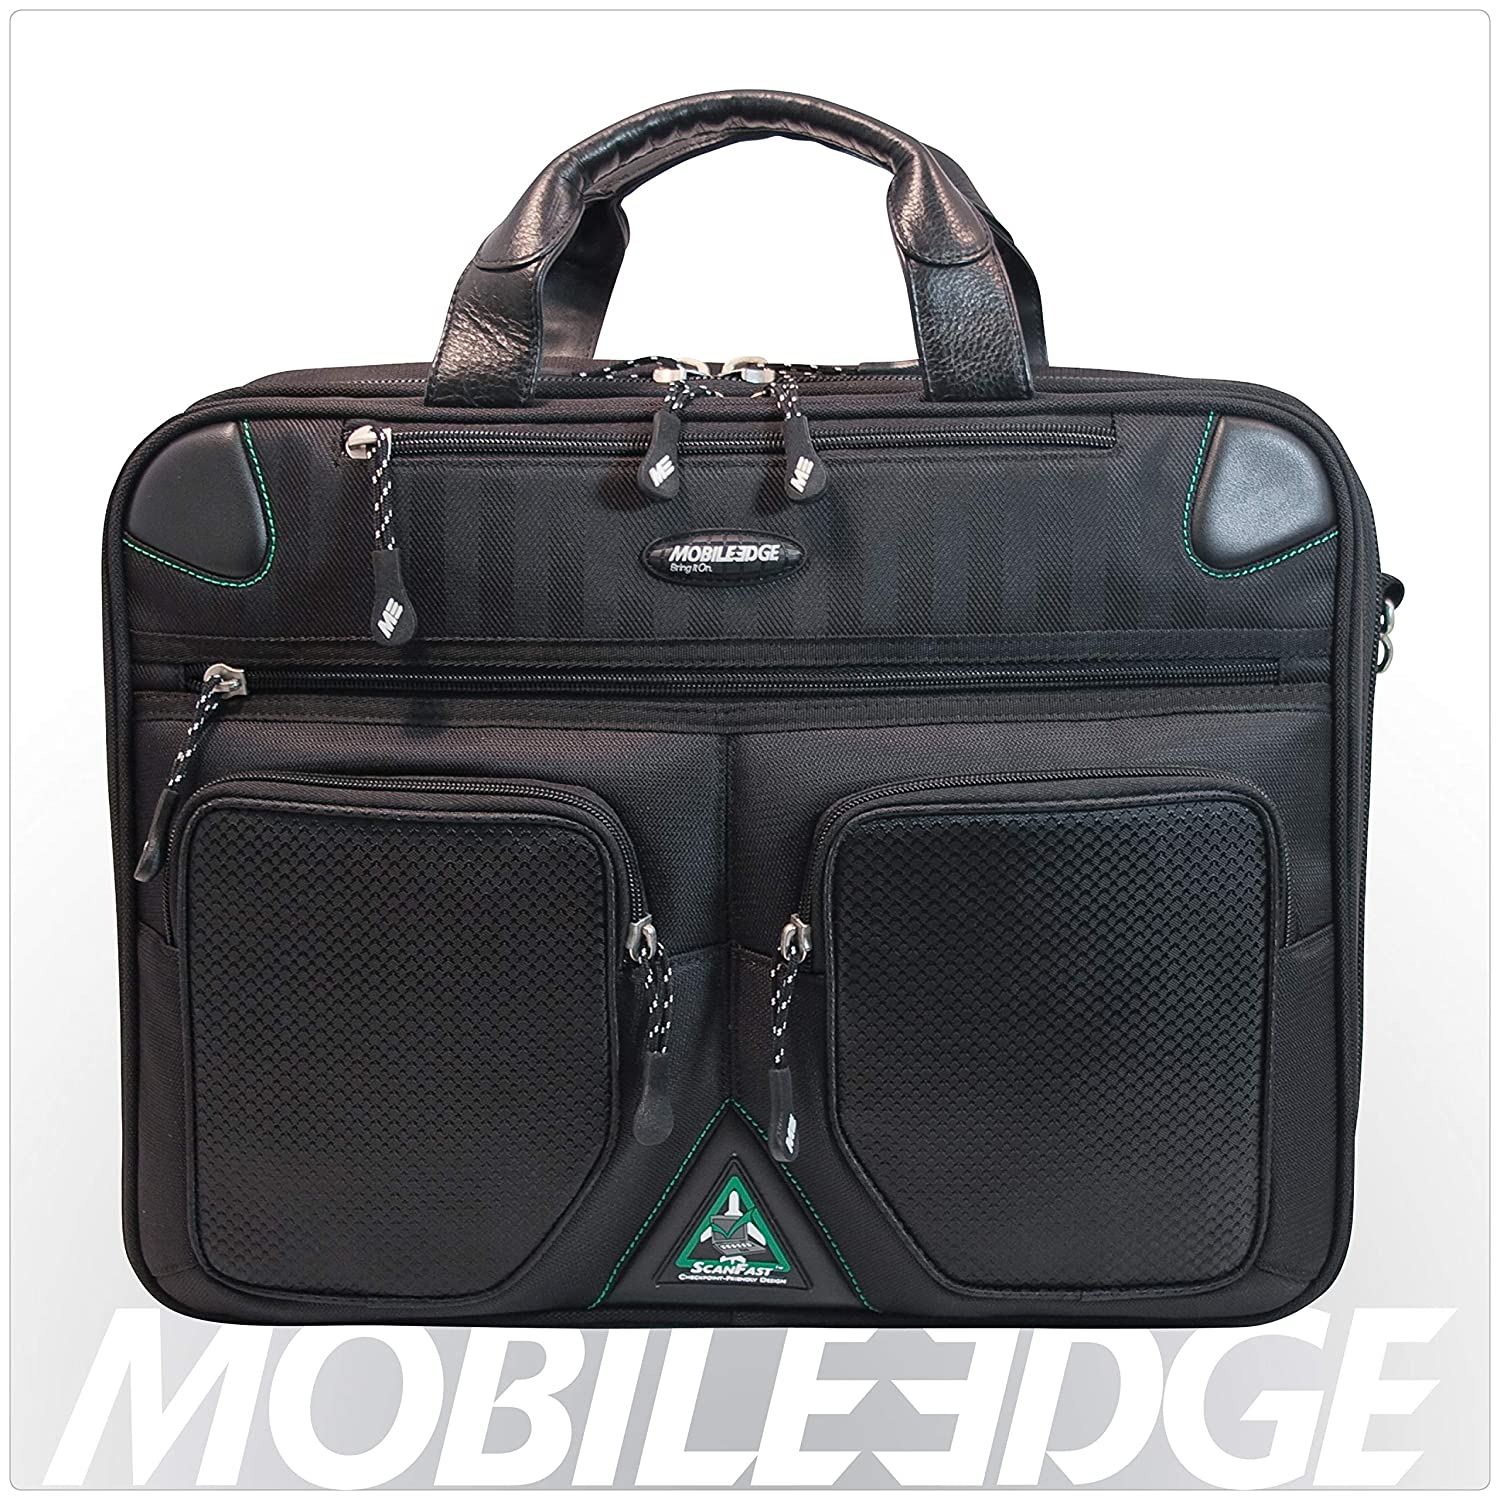 a5cc84ea11c2 Mobile Edge ScanFast Checkpoint and Eco Friendly Laptop Briefcase 16 Inch  PC, 17 Inch Mac for Men, Women, Business Travel, Student, Black MESFBC2.0